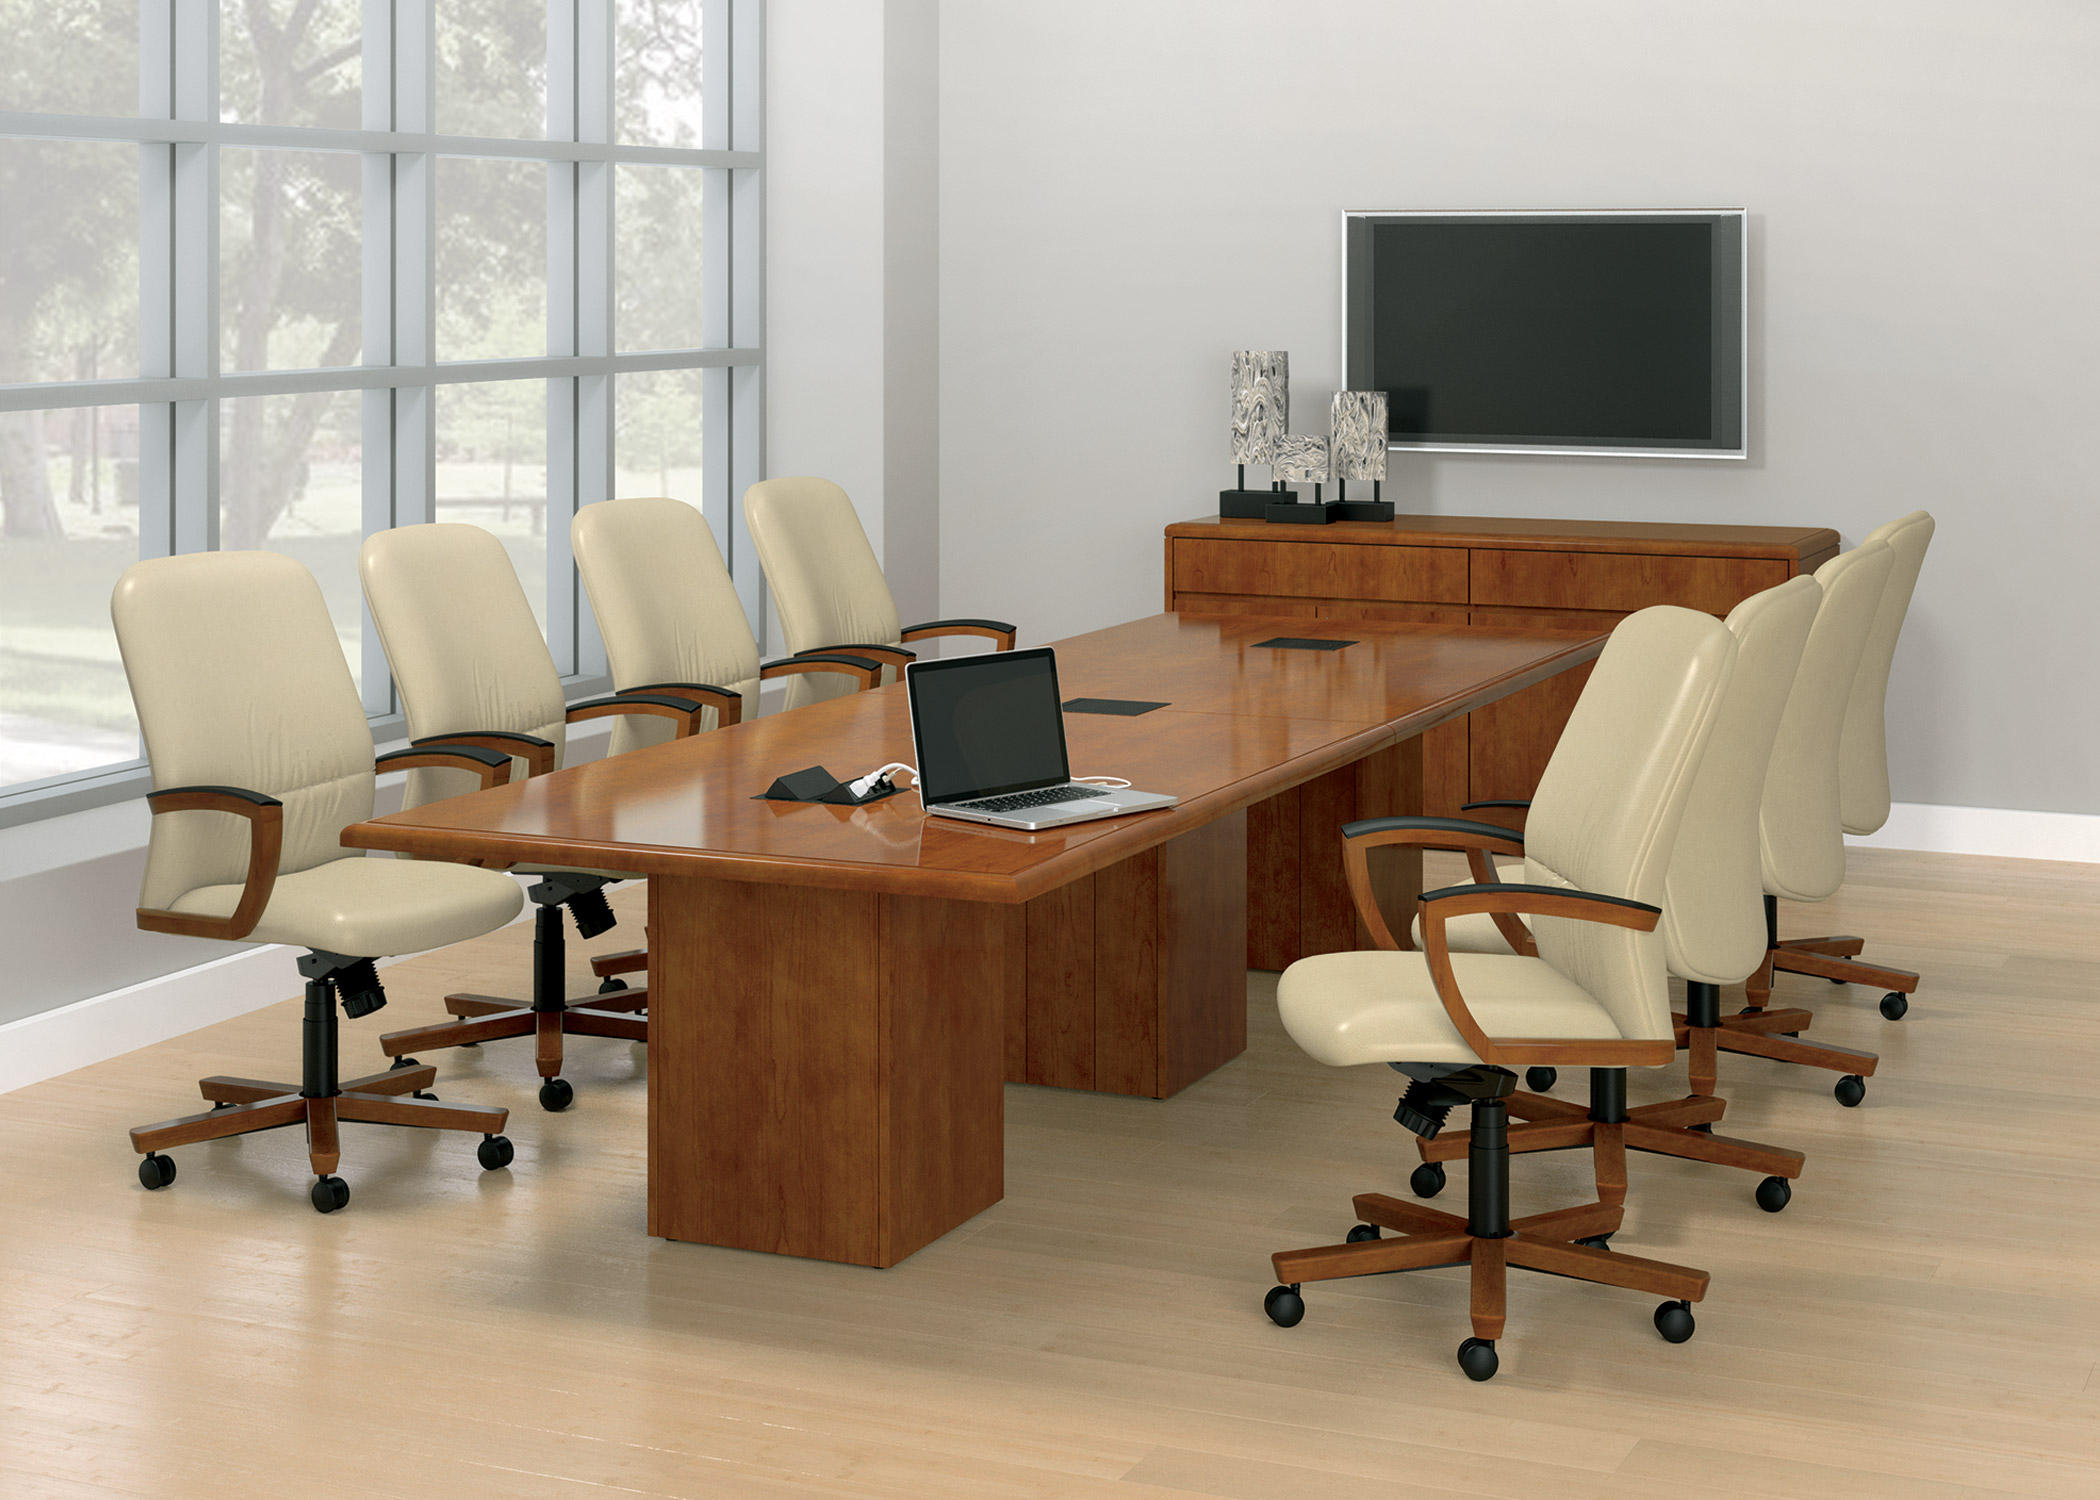 ARROWOOD TABLE Conference tables from National Office Furniture